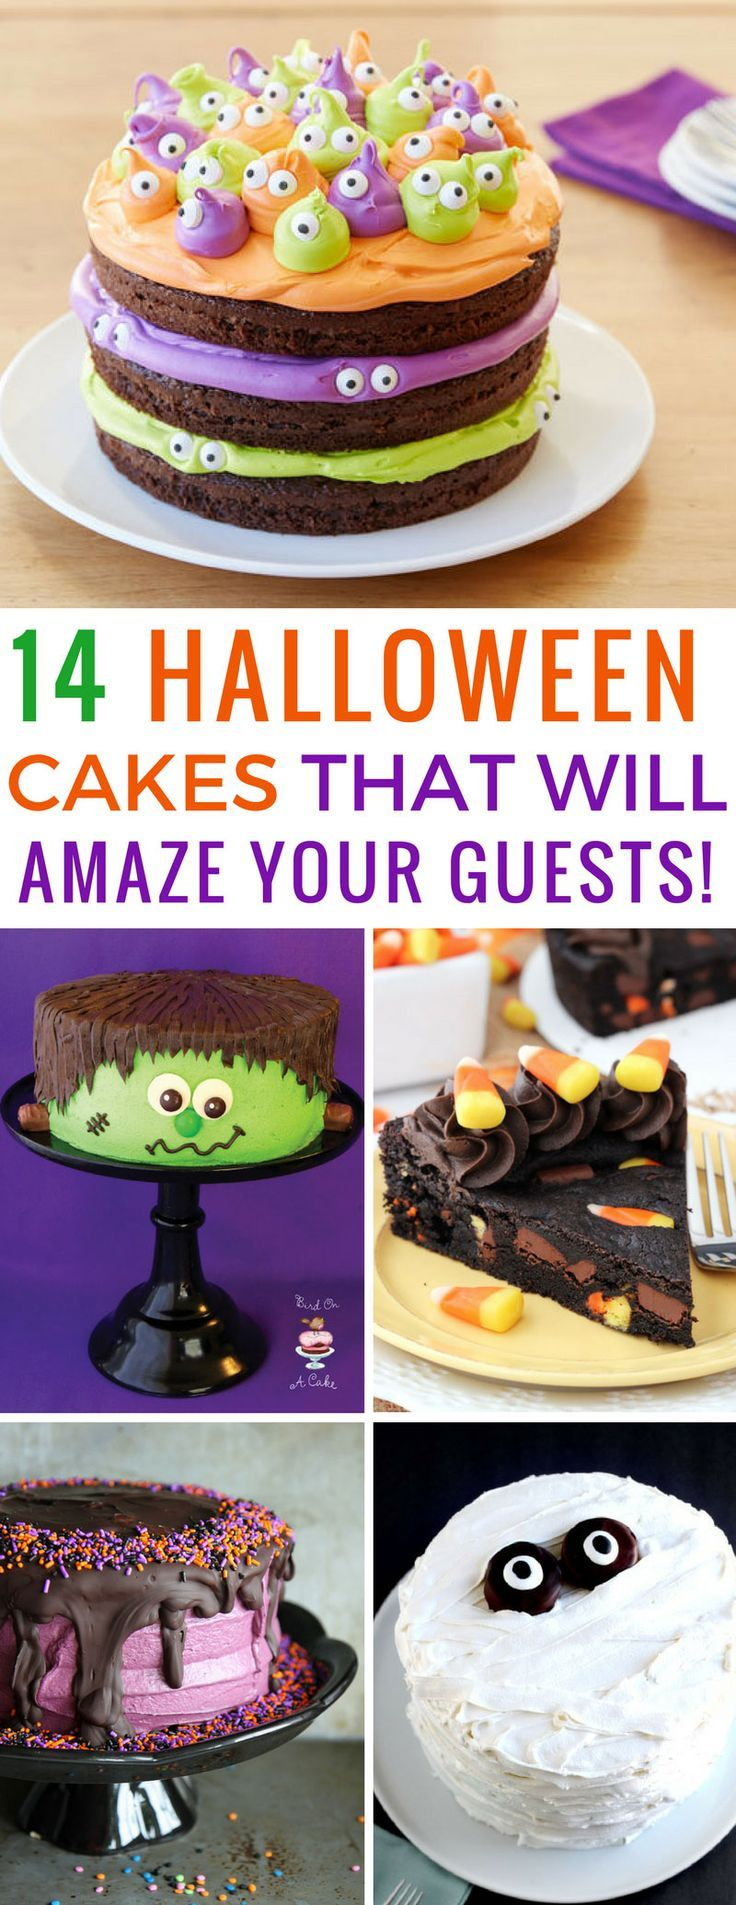 14 Easy Halloween Cake Recipes for Kids - Perfect for ...